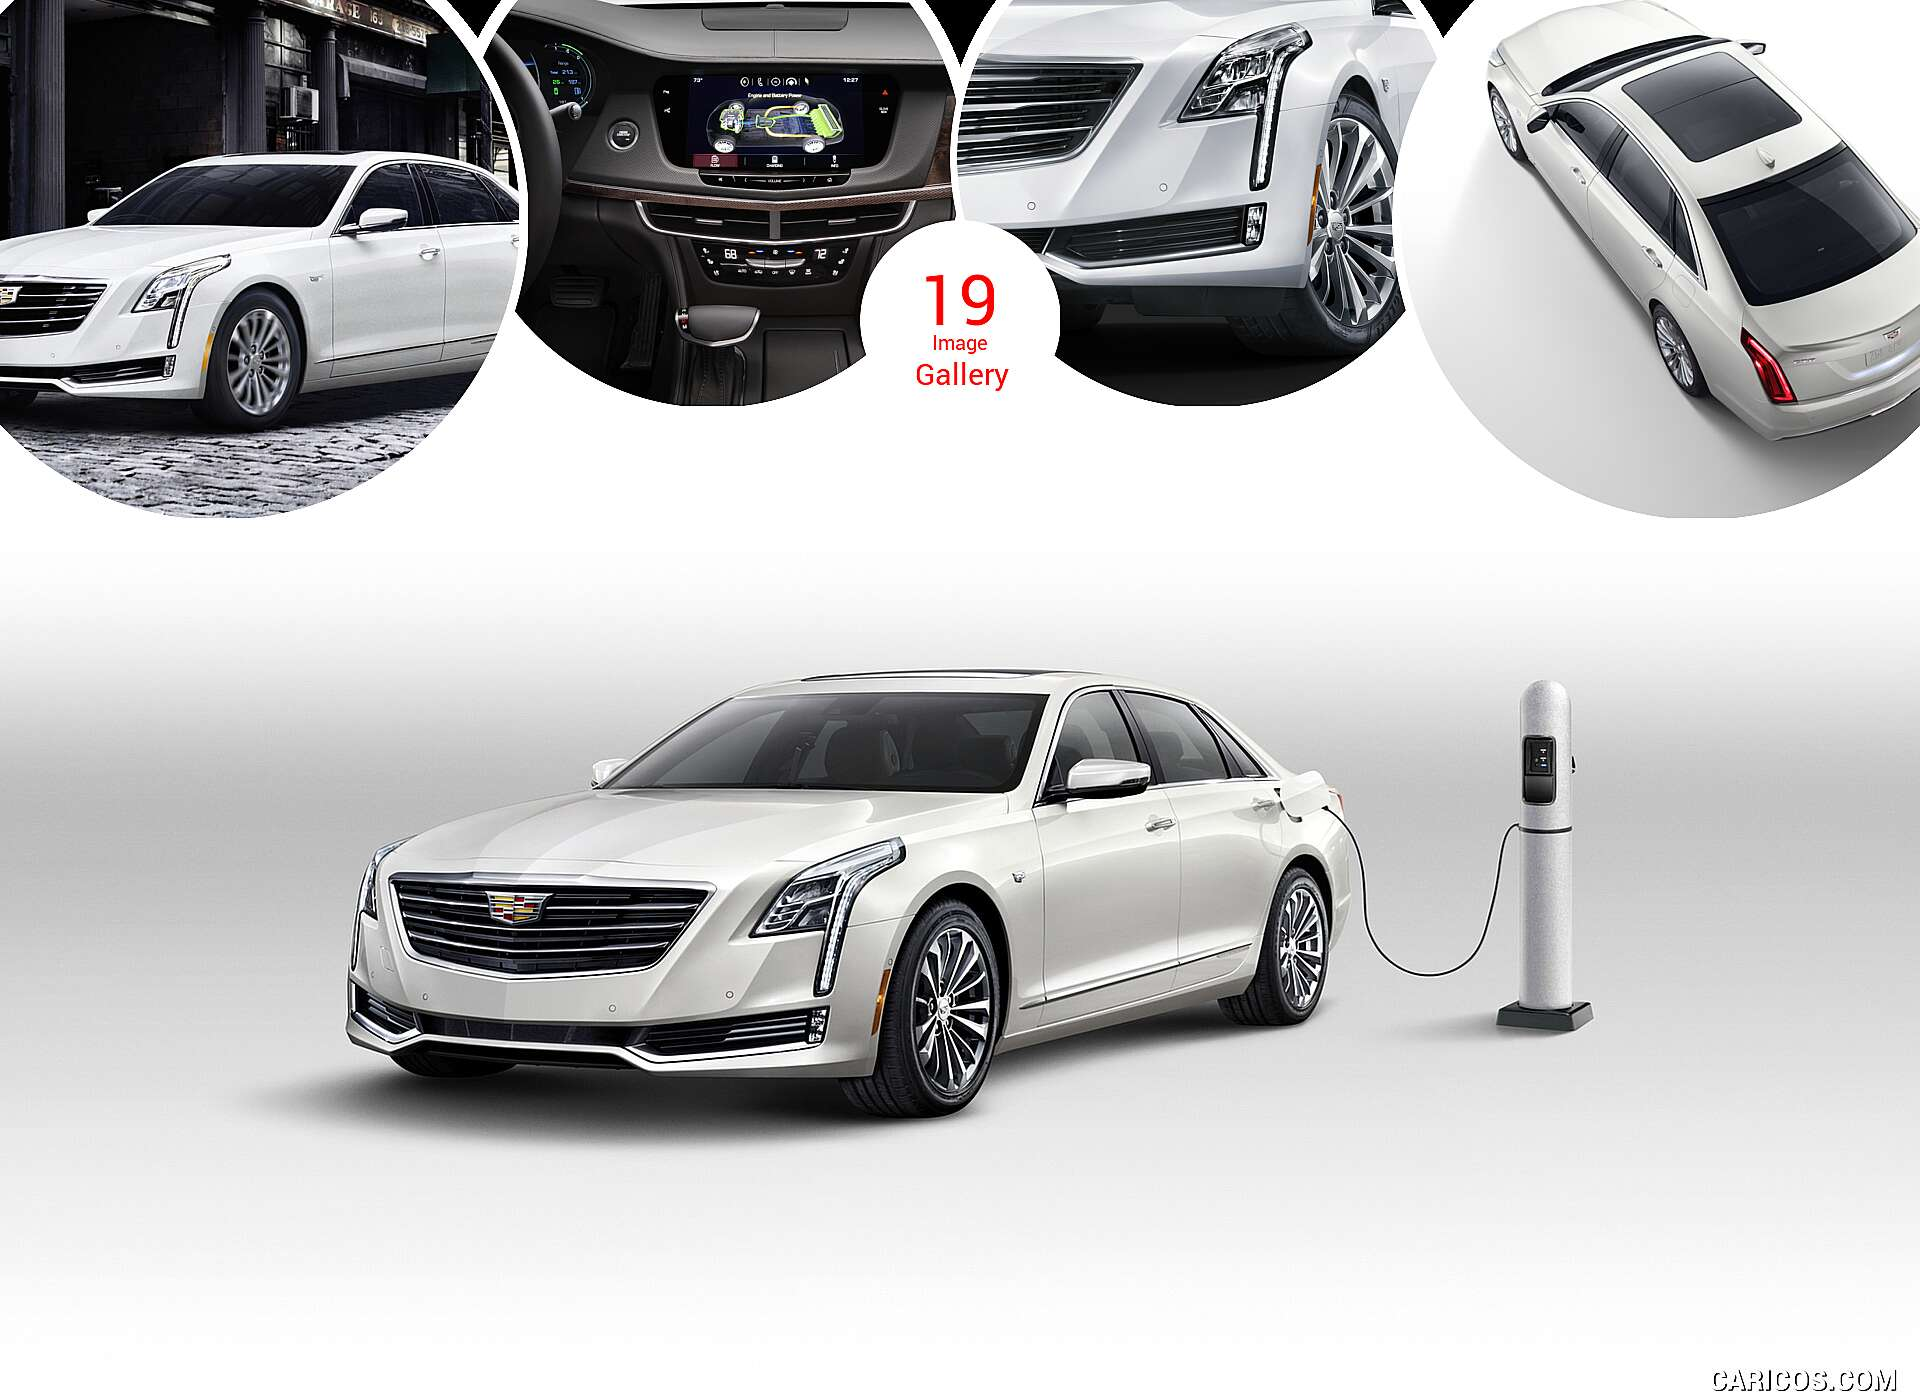 2017 cadillac ct6 plug in hybrid. Black Bedroom Furniture Sets. Home Design Ideas